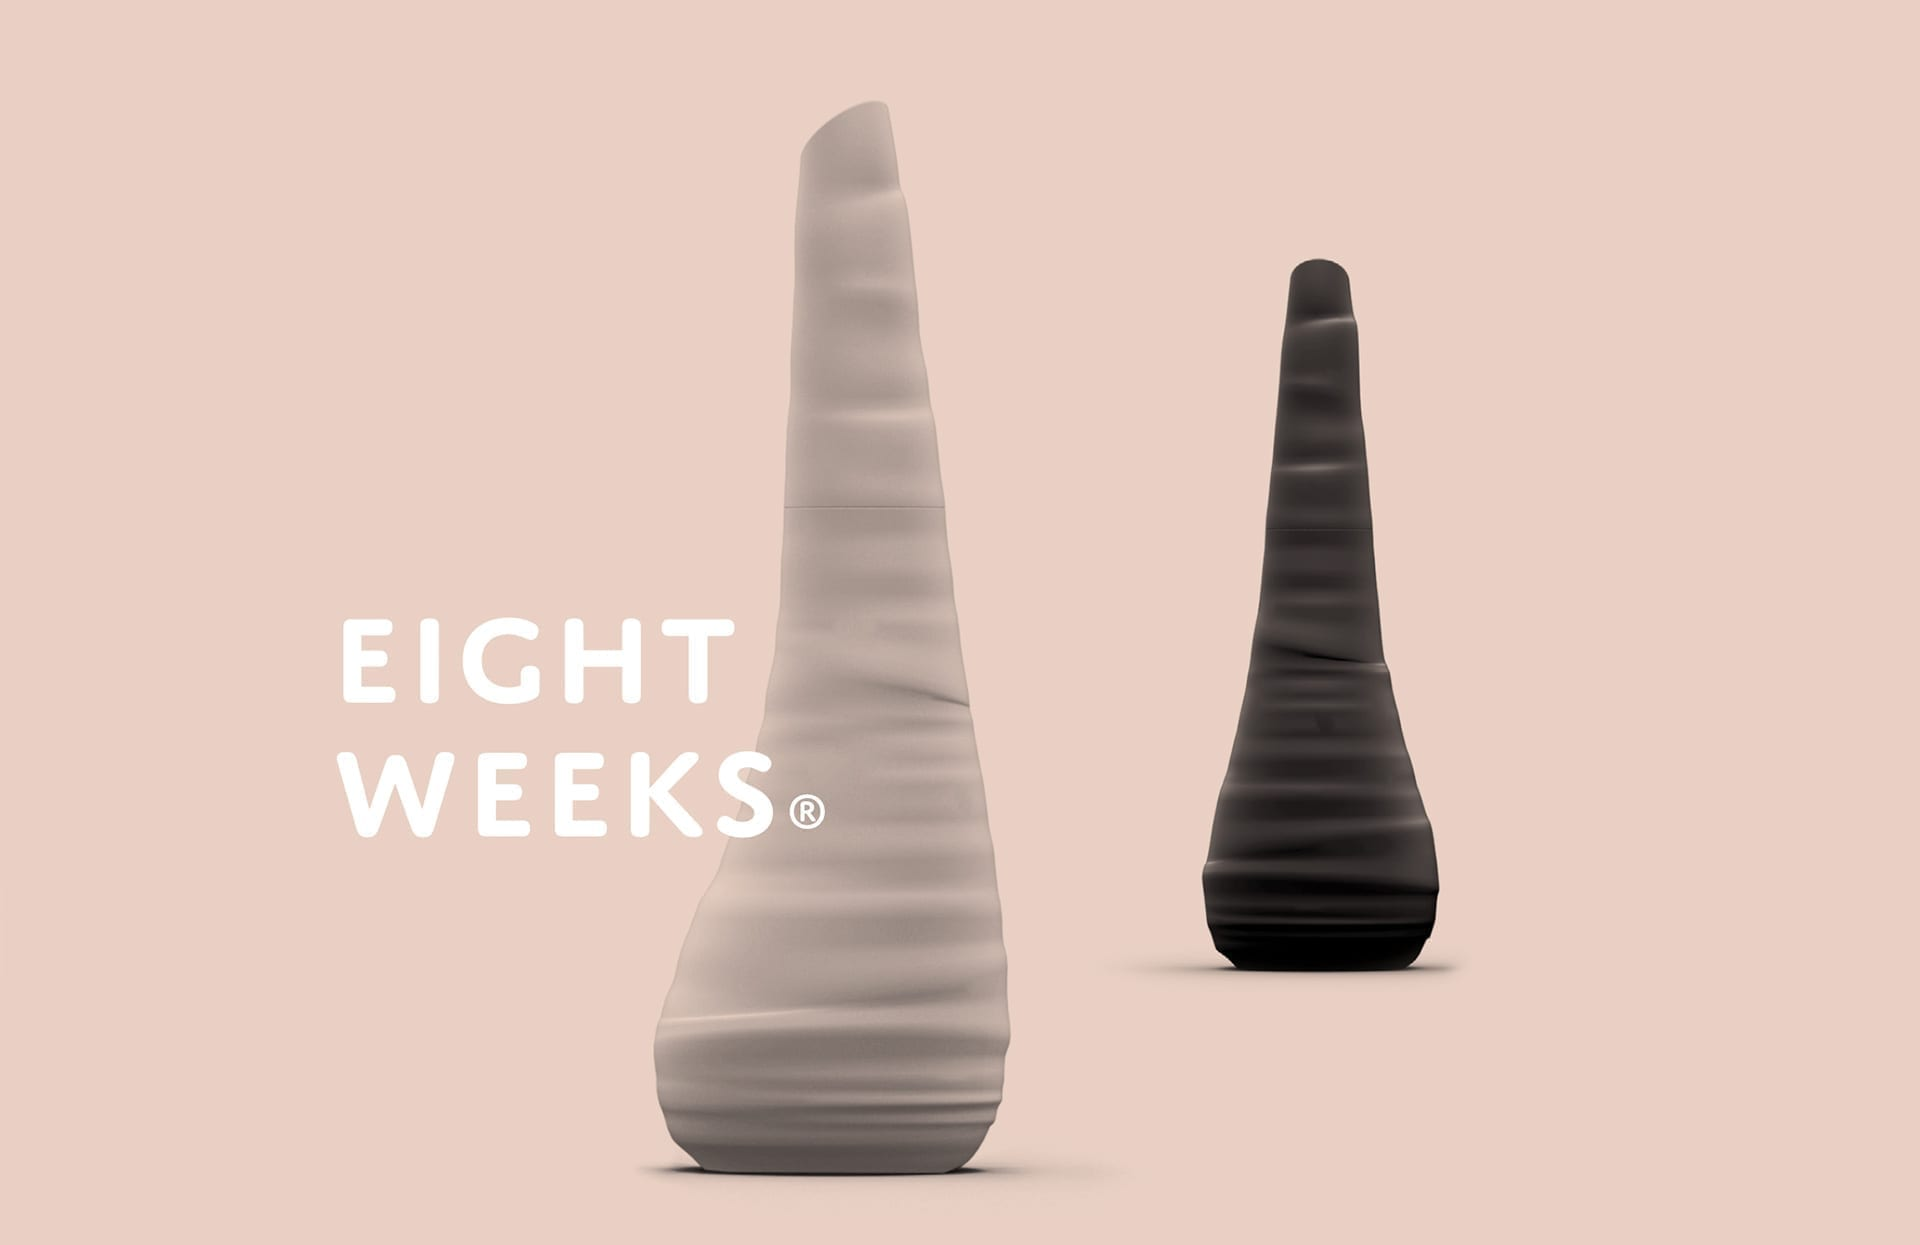 Product Eight Weeks